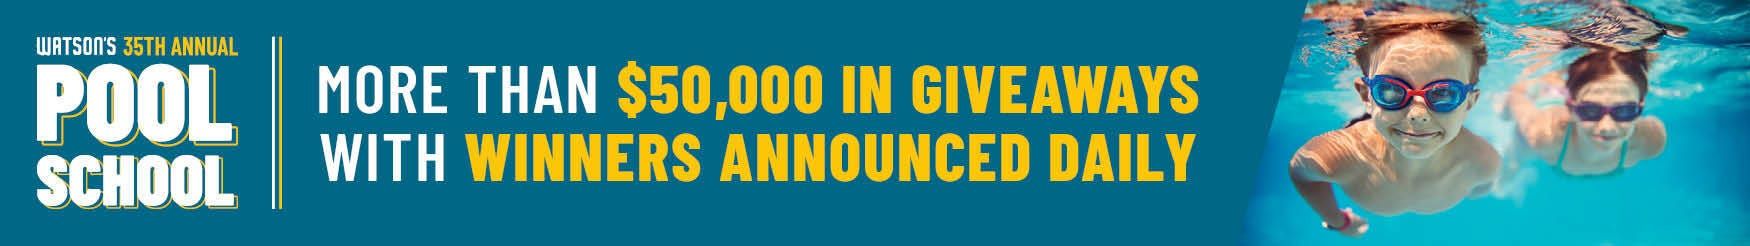 More than $50,000 in giveaways with winners announced daily